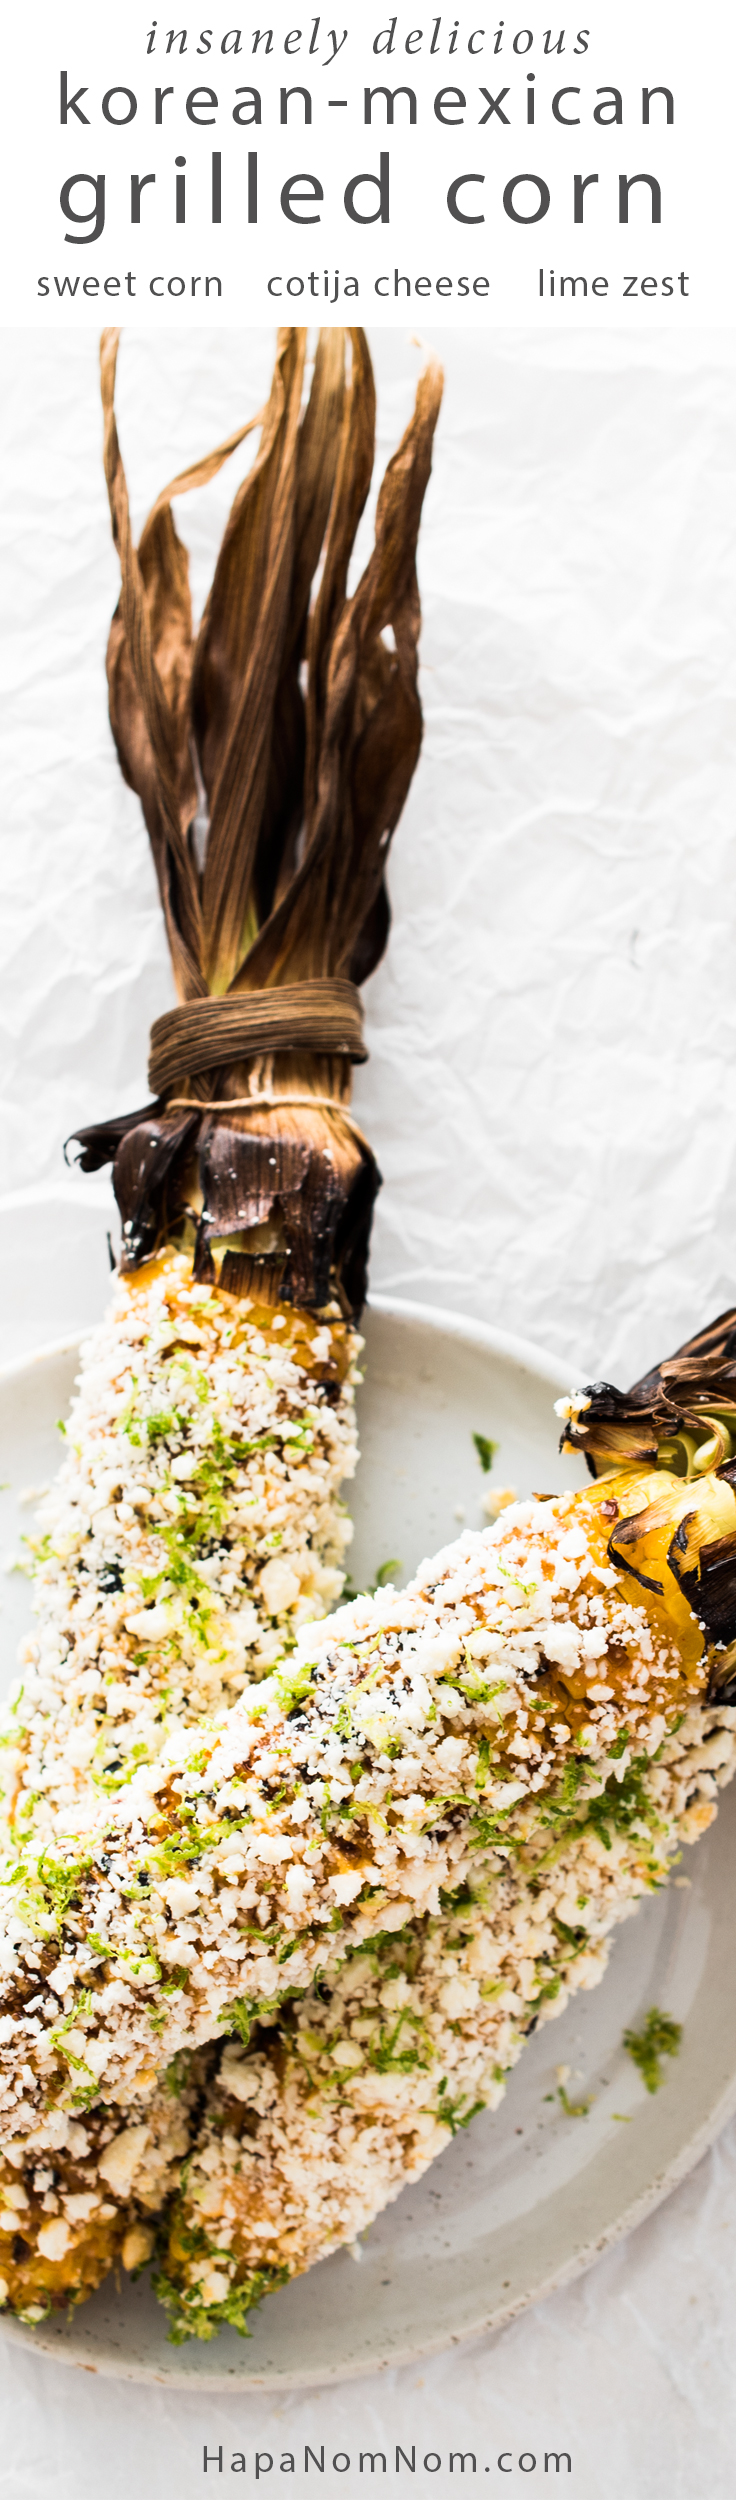 Korean-Mexican-Grilled-Corn-Pin